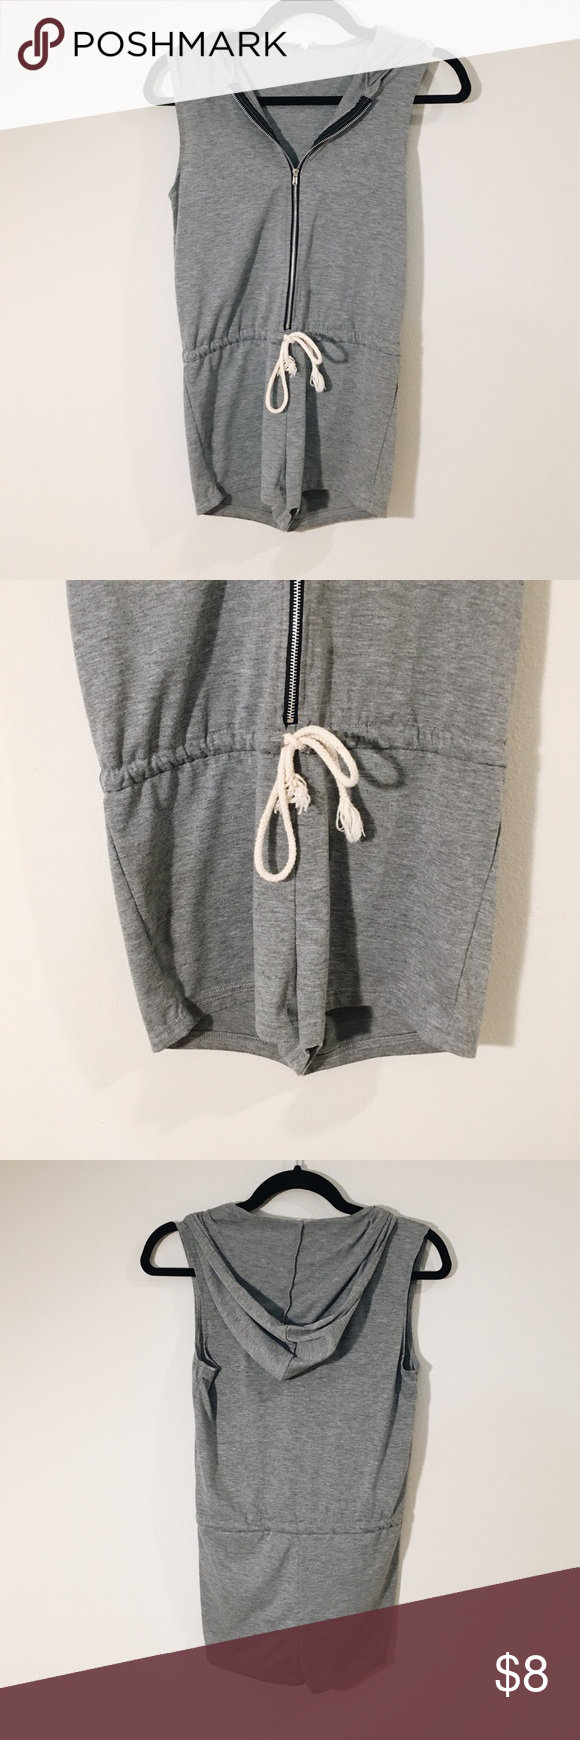 Gray Zip Romper Head to the beach in this laidback romper fashioned with a hoodie and drawstring waist. Tag says S, but better fit for XXSP Swim Coverups